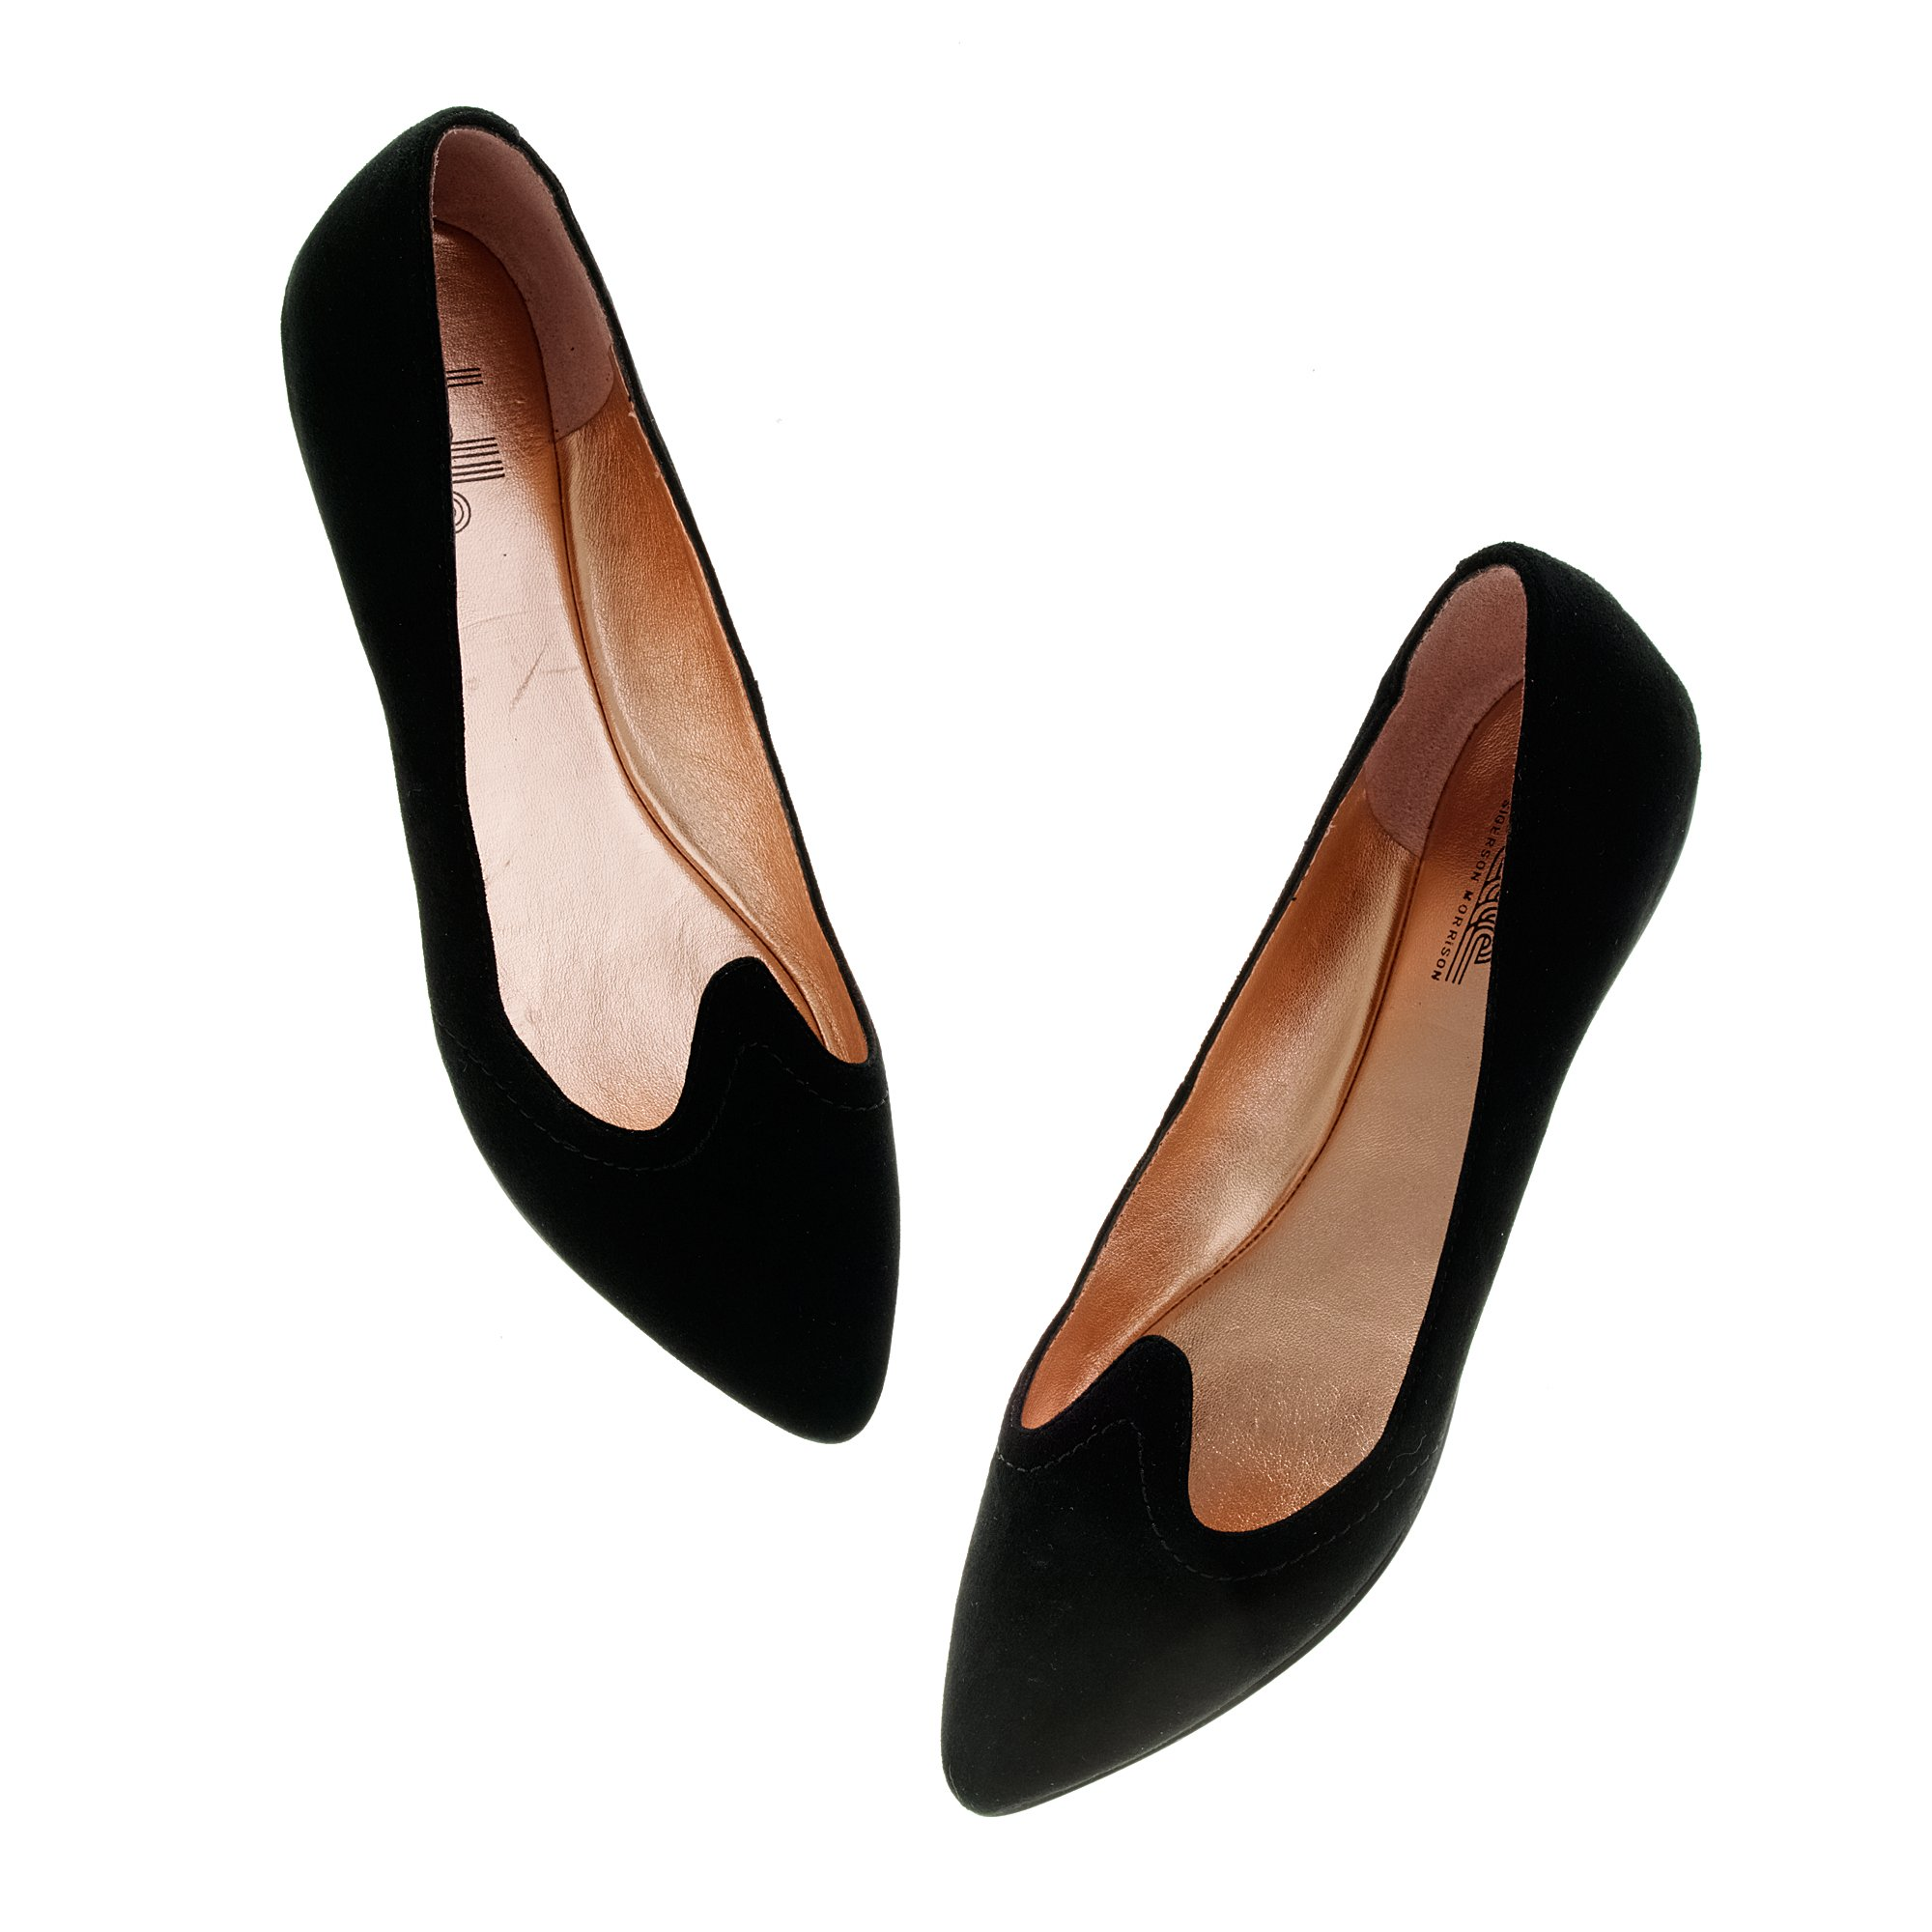 3c32accff Madewell Belle By Sigerson Morrison® Suede Flats in Black - Lyst